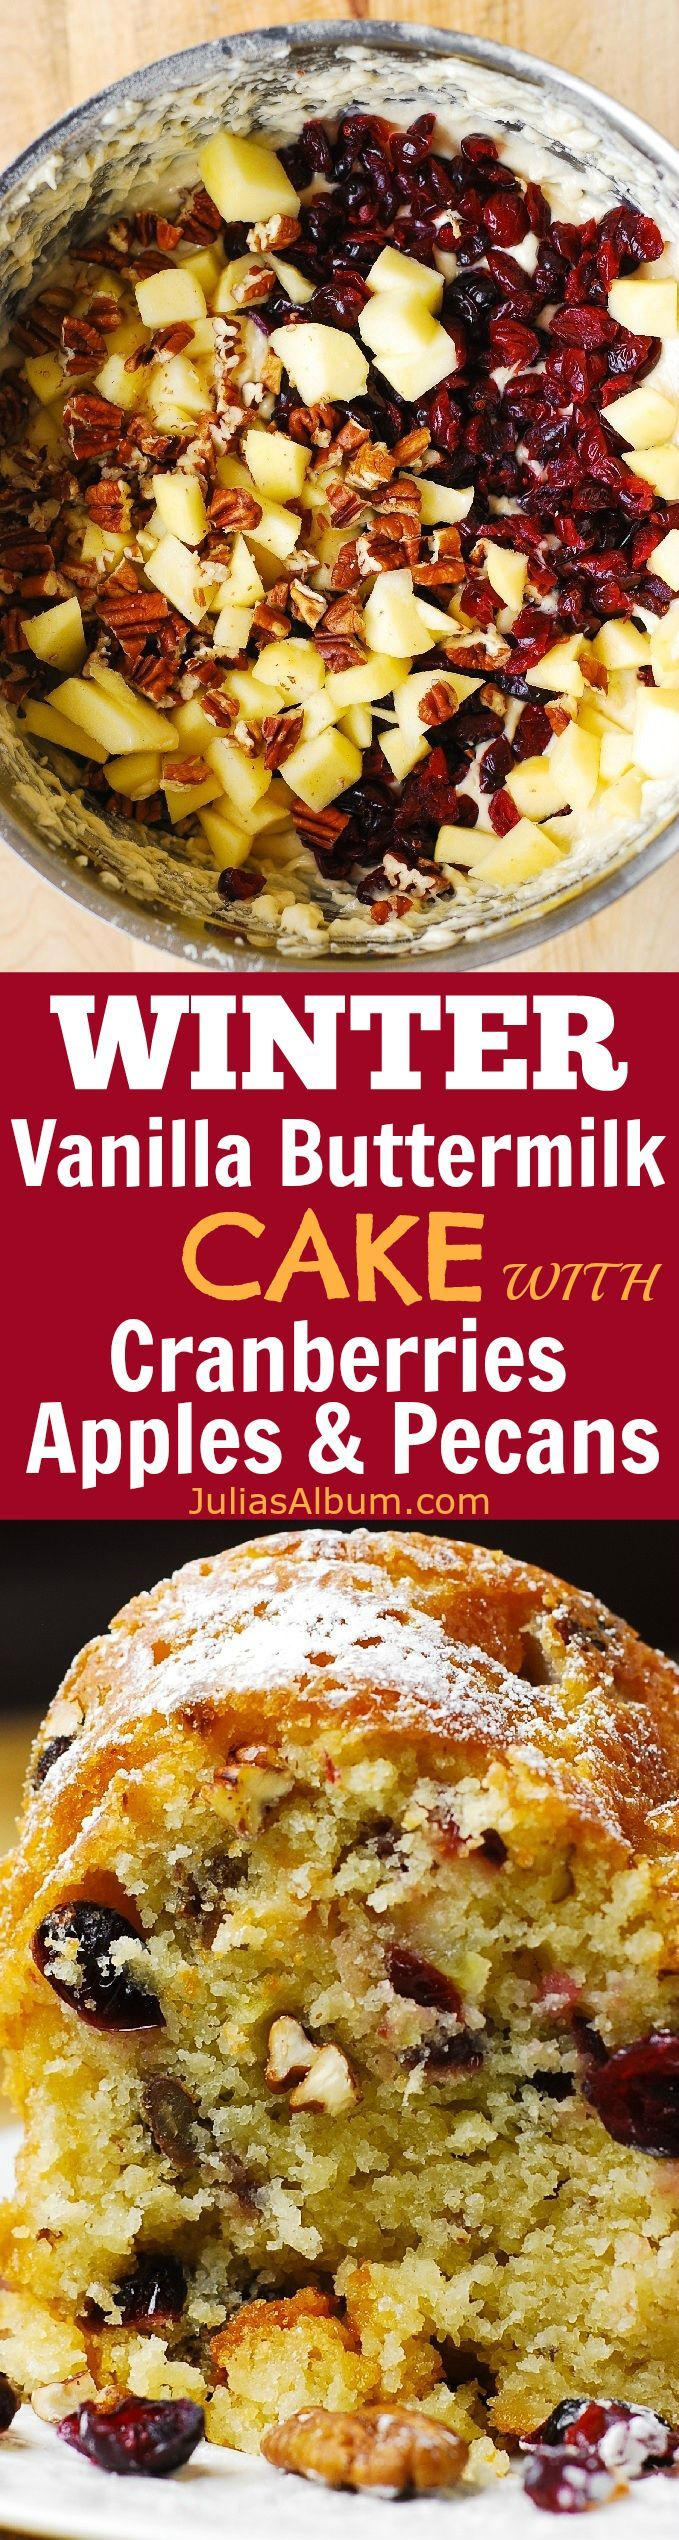 WINTER RECIPE: Vanilla Buttermilk cake with Cranberries, Apples, and Pecans